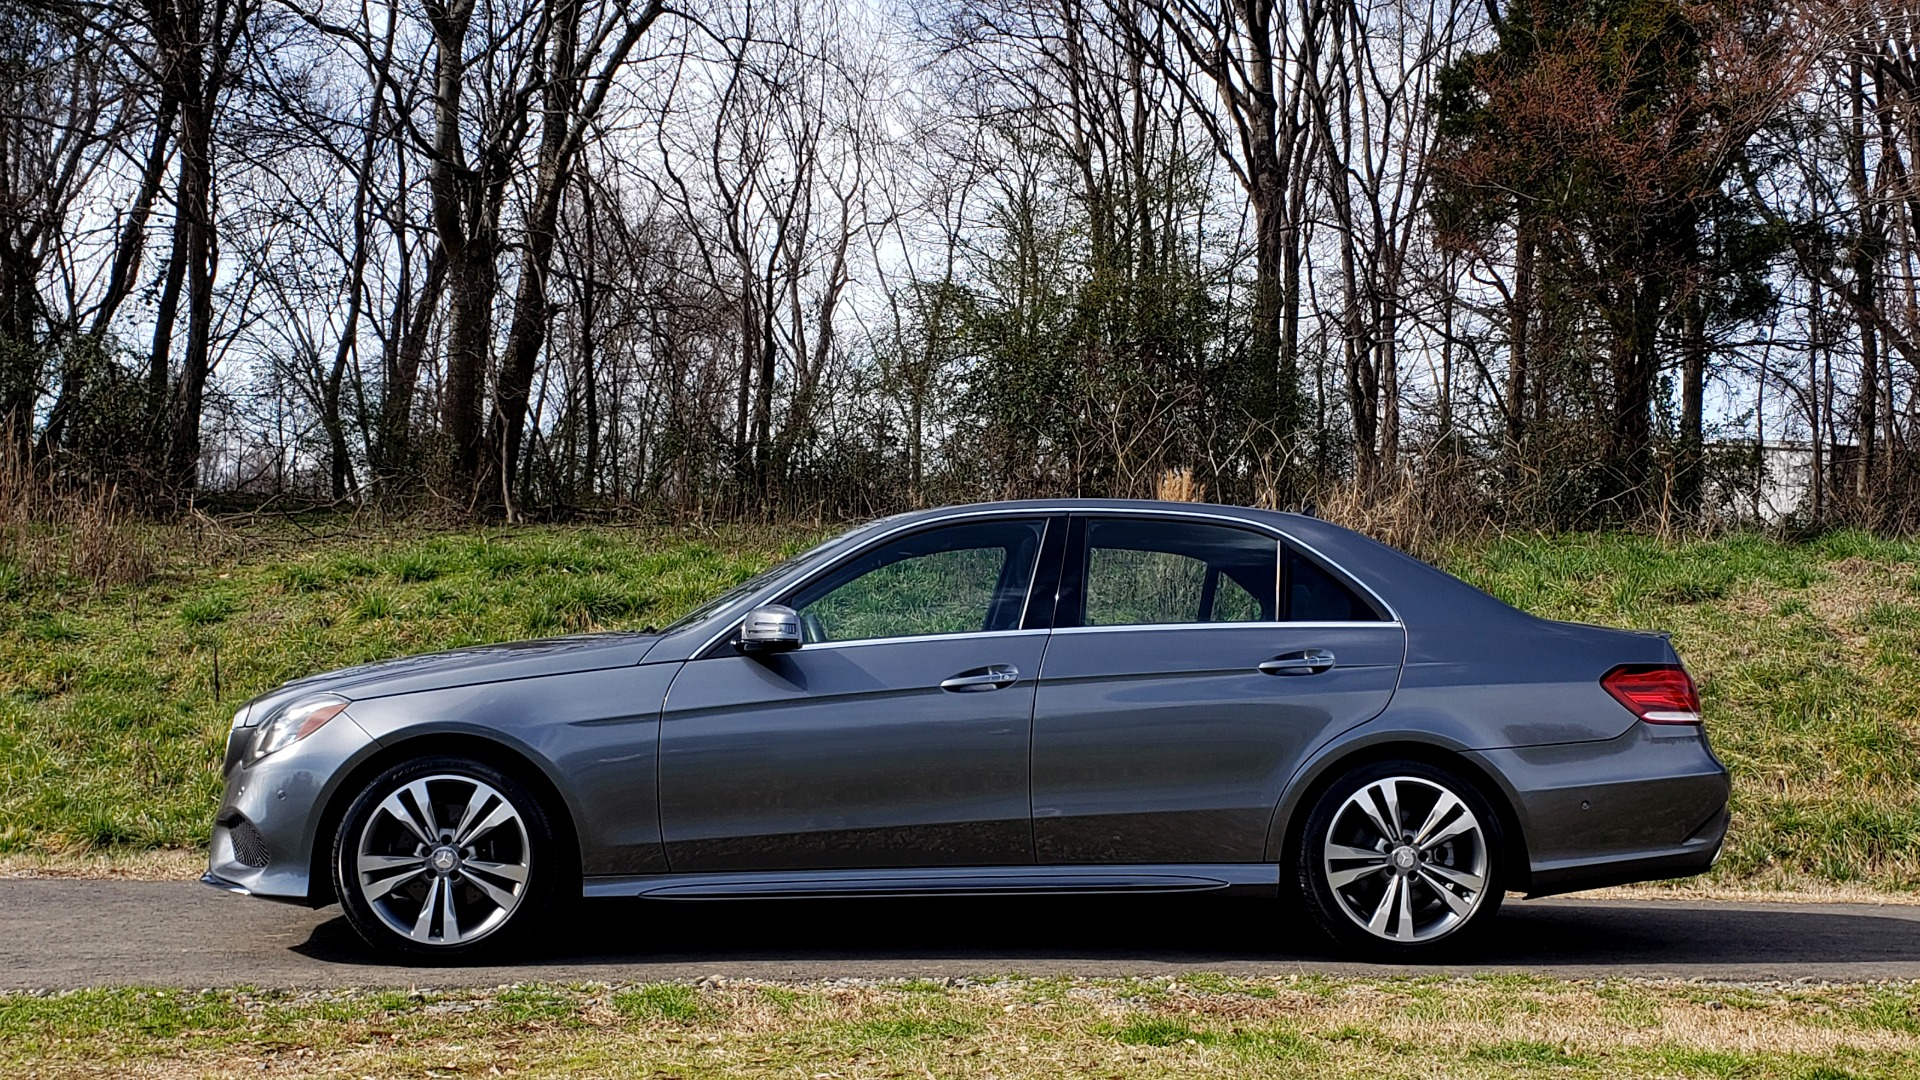 Used 2016 Mercedes-Benz E-CLASS E 350 PREM / KEYLESS-GO / NAV / SUNROOF / REARVIEW for sale Sold at Formula Imports in Charlotte NC 28227 2